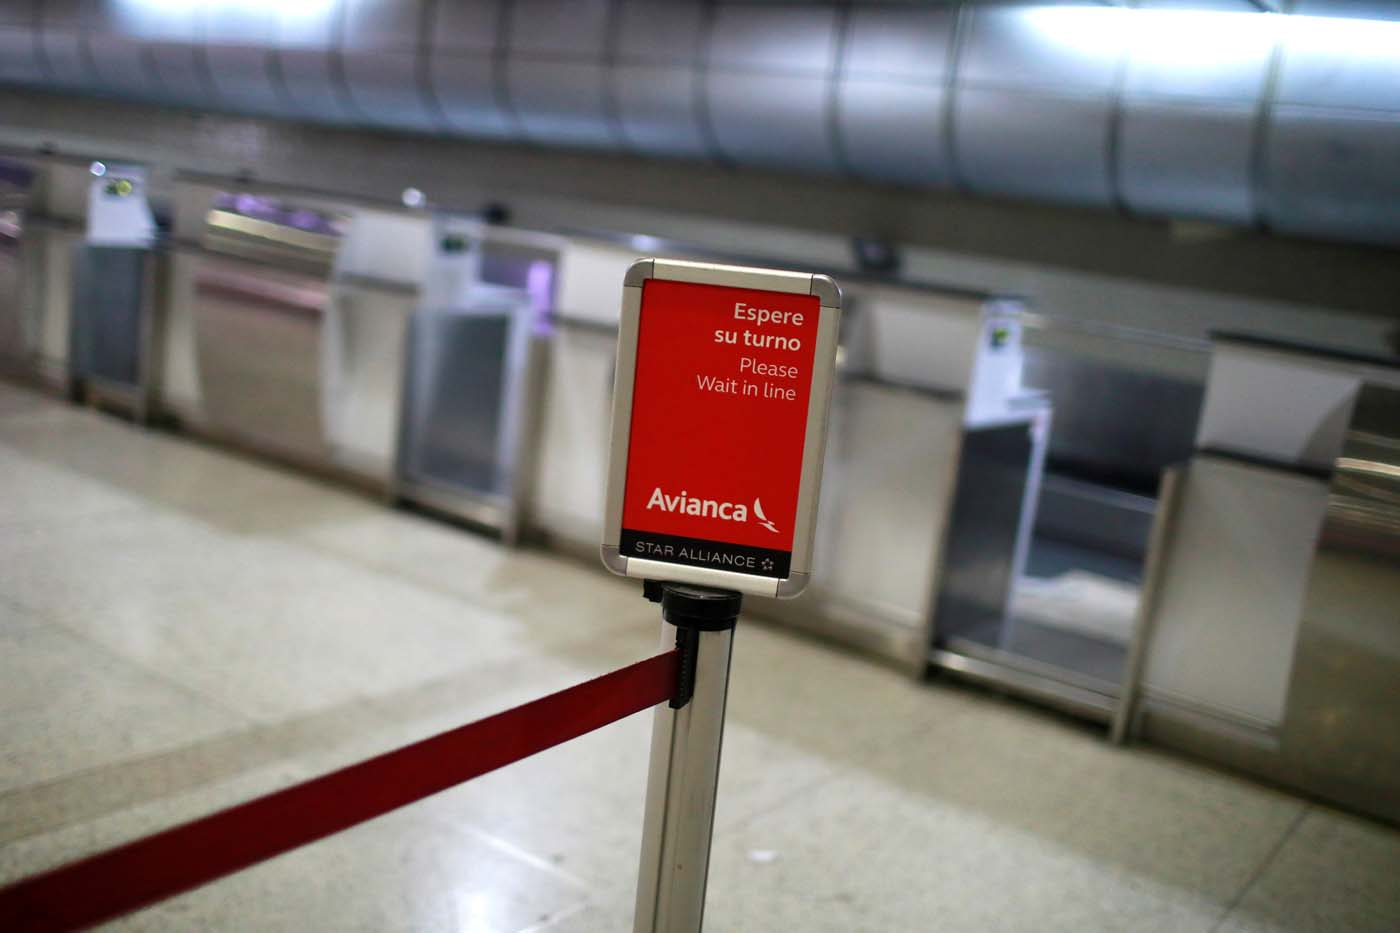 Empty counters of Avianca airline are seen at the Simon Bolivar airport in Caracas, Venezuela July 27, 2017. REUTERS/Marco Bello